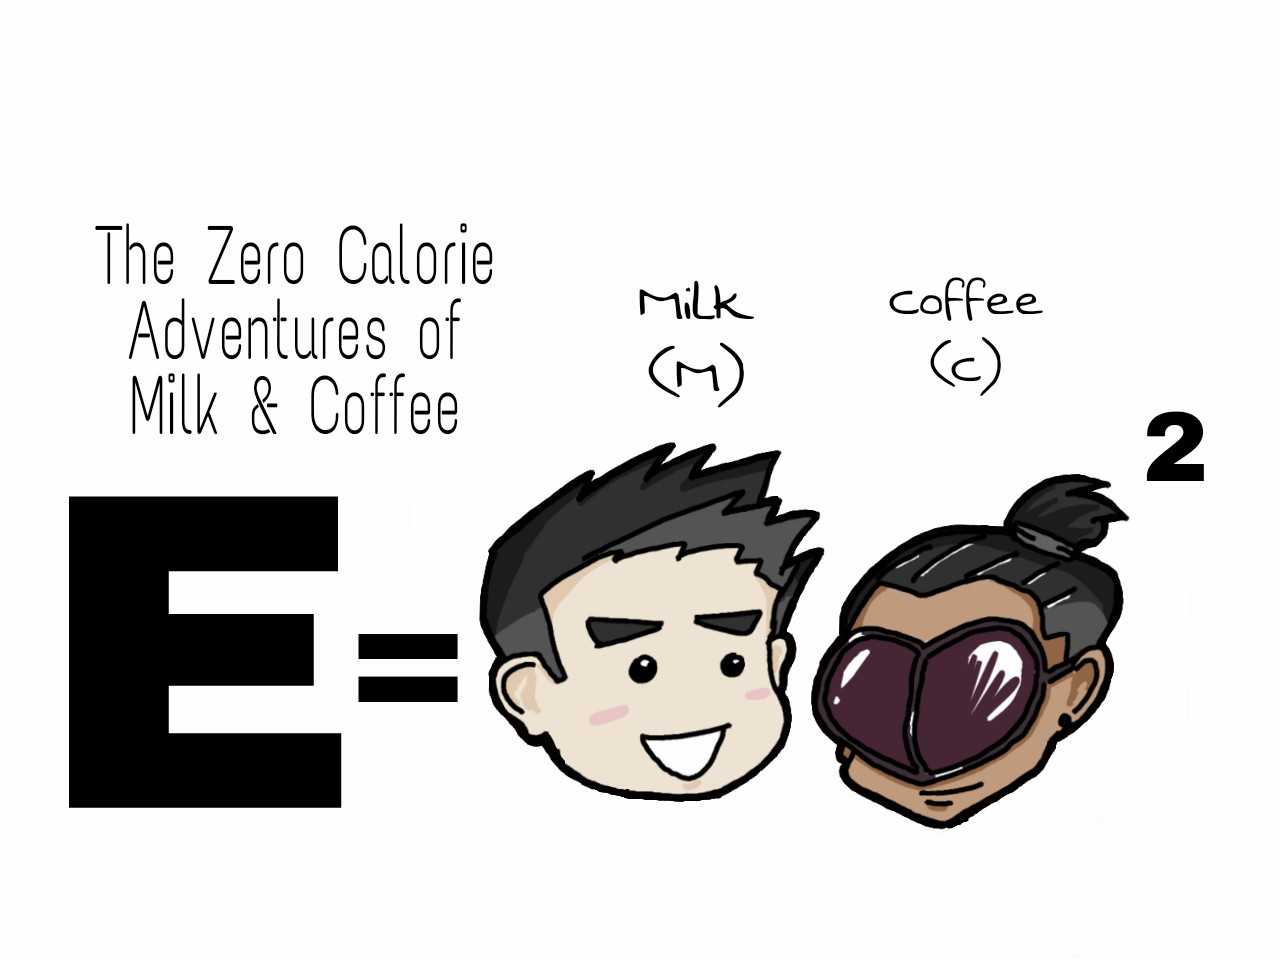 The Zero Calorie Adventures of Milk & Coffee